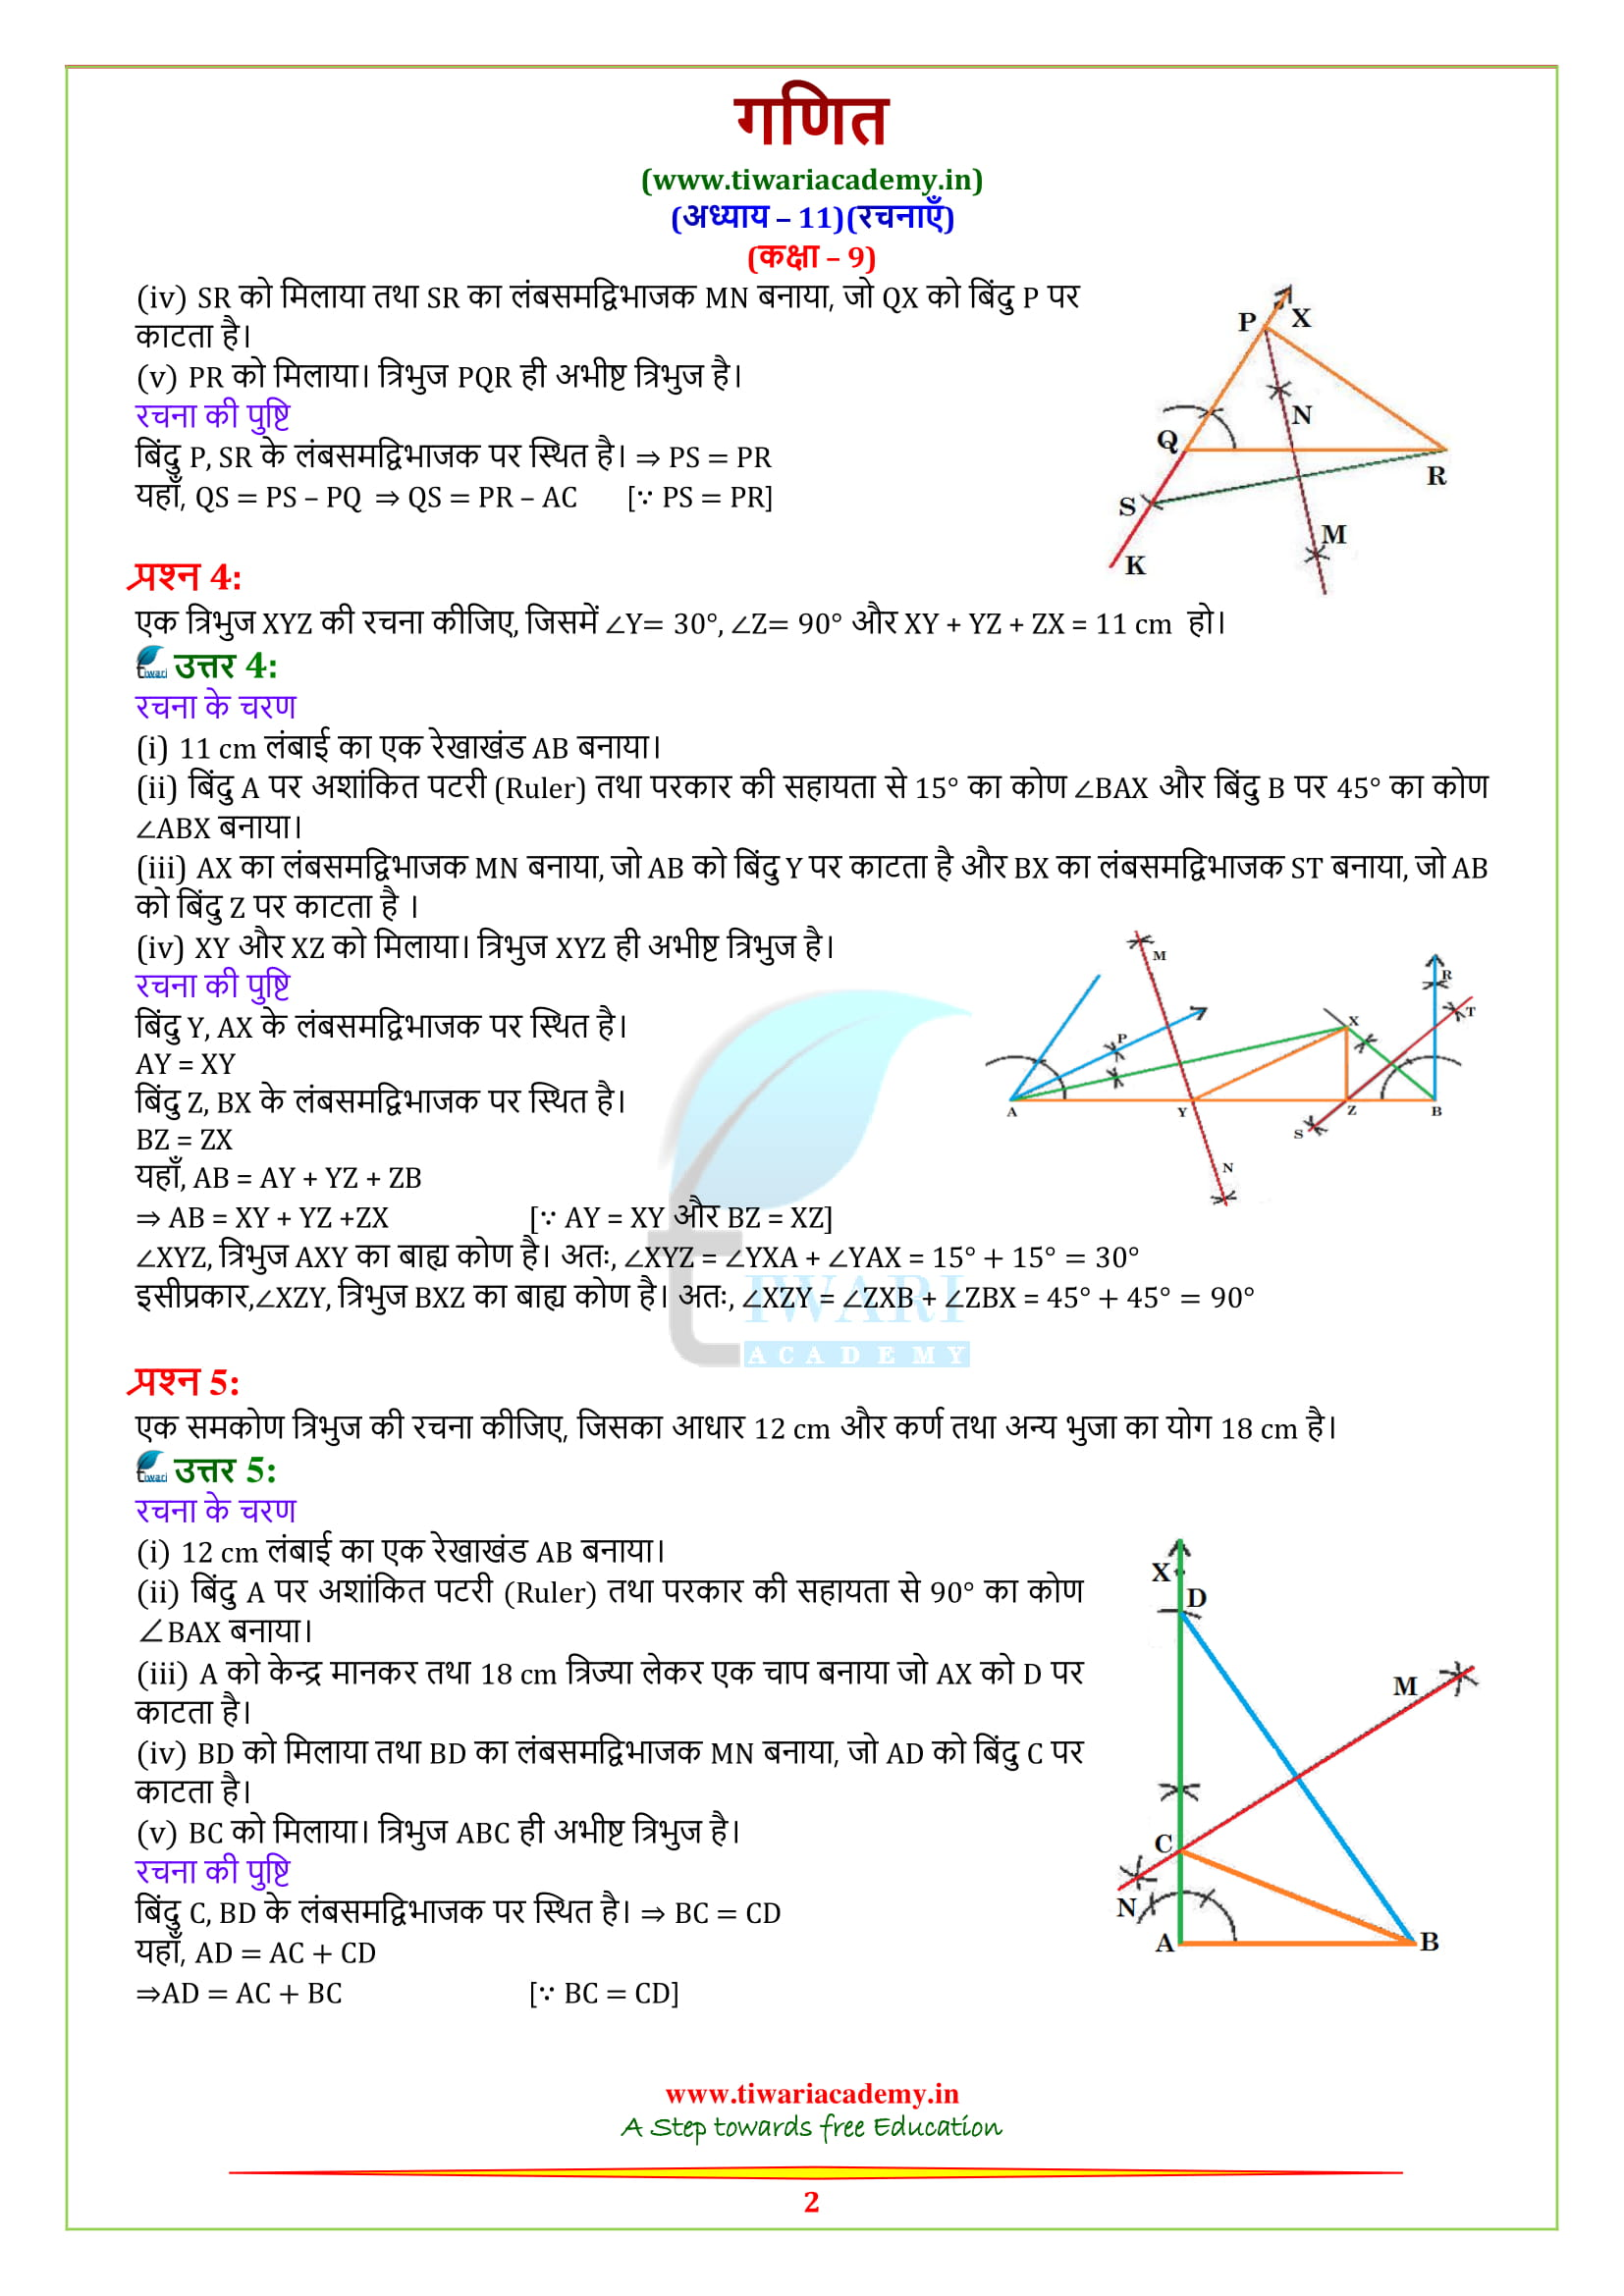 NCERT Solutions for class 9 Maths Exercise 11.2 all question answers kunji